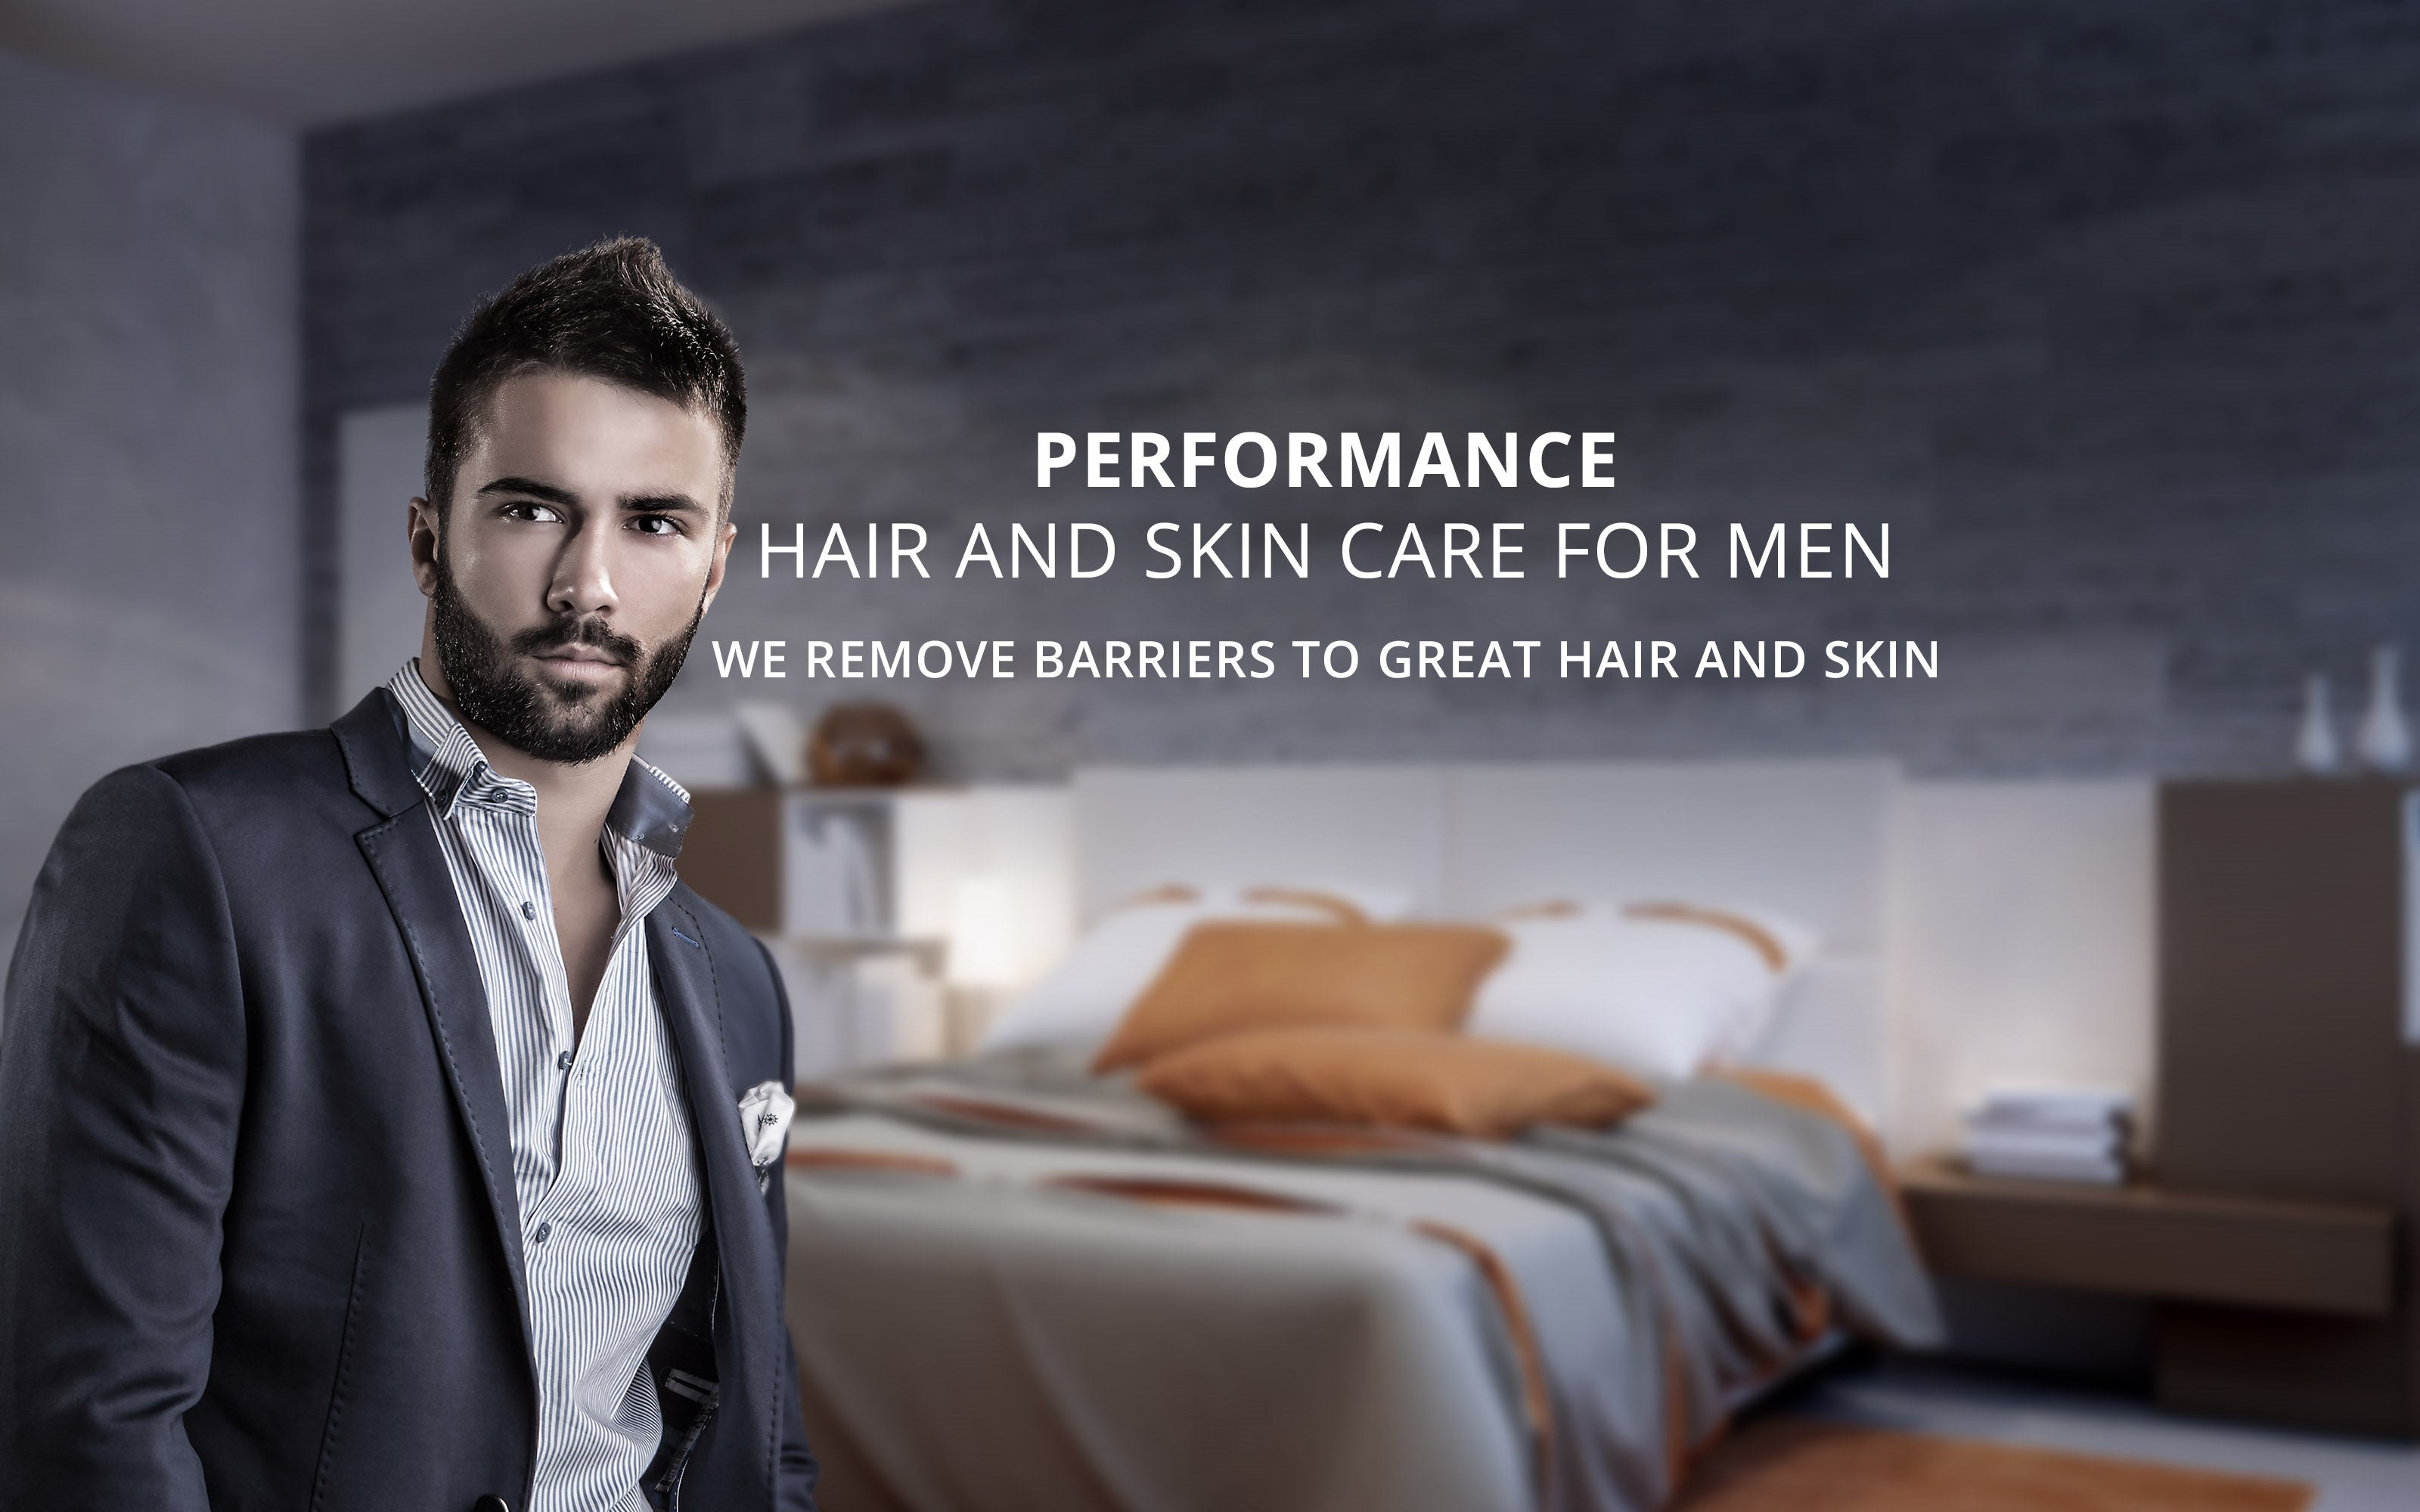 High Performance Hair and Skin Care